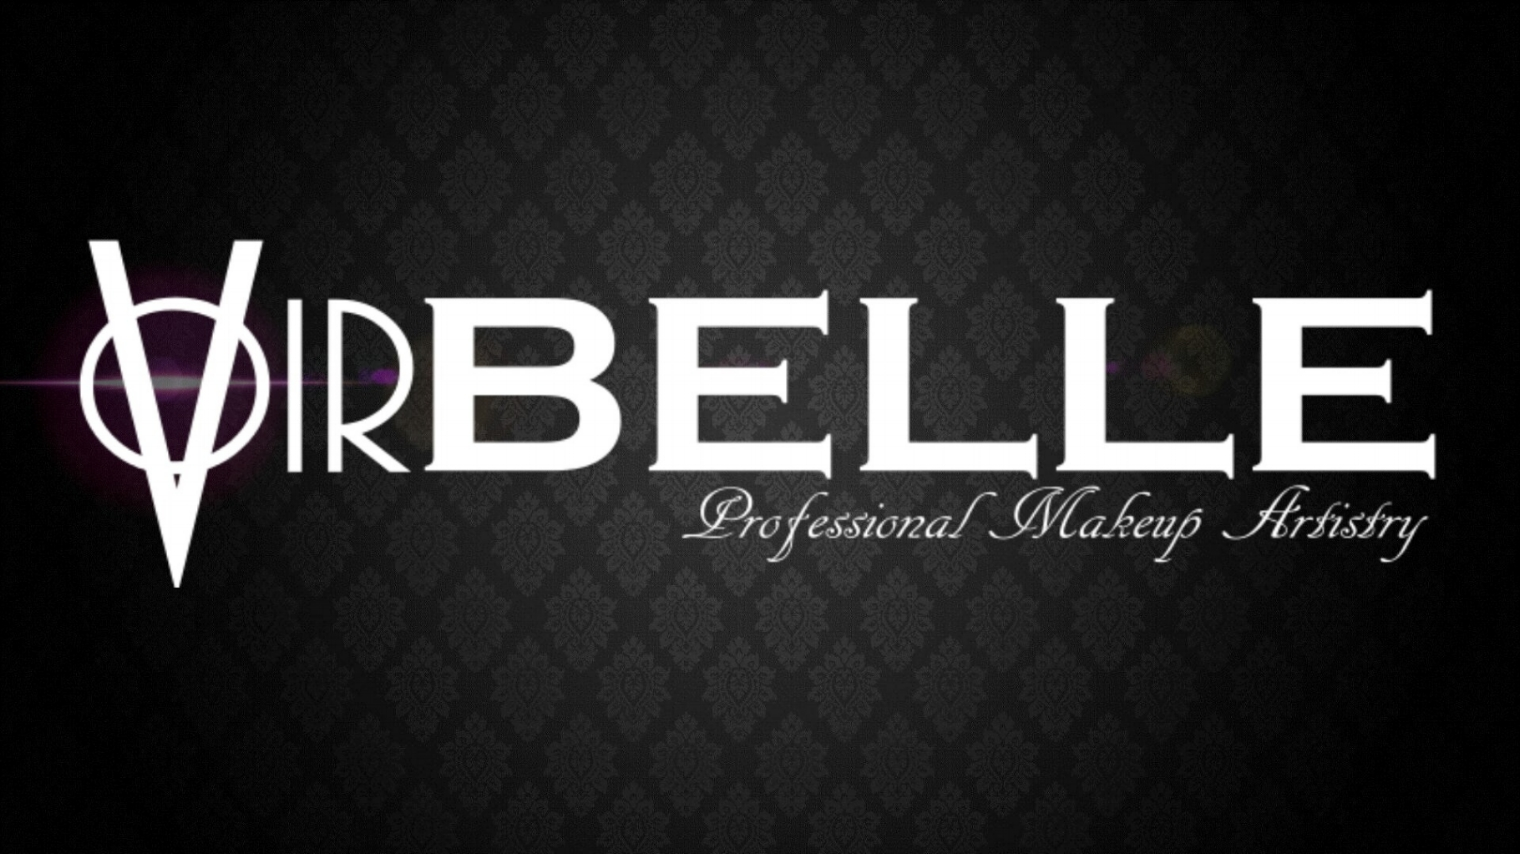 VoirBelle Professional Makeup Artistry